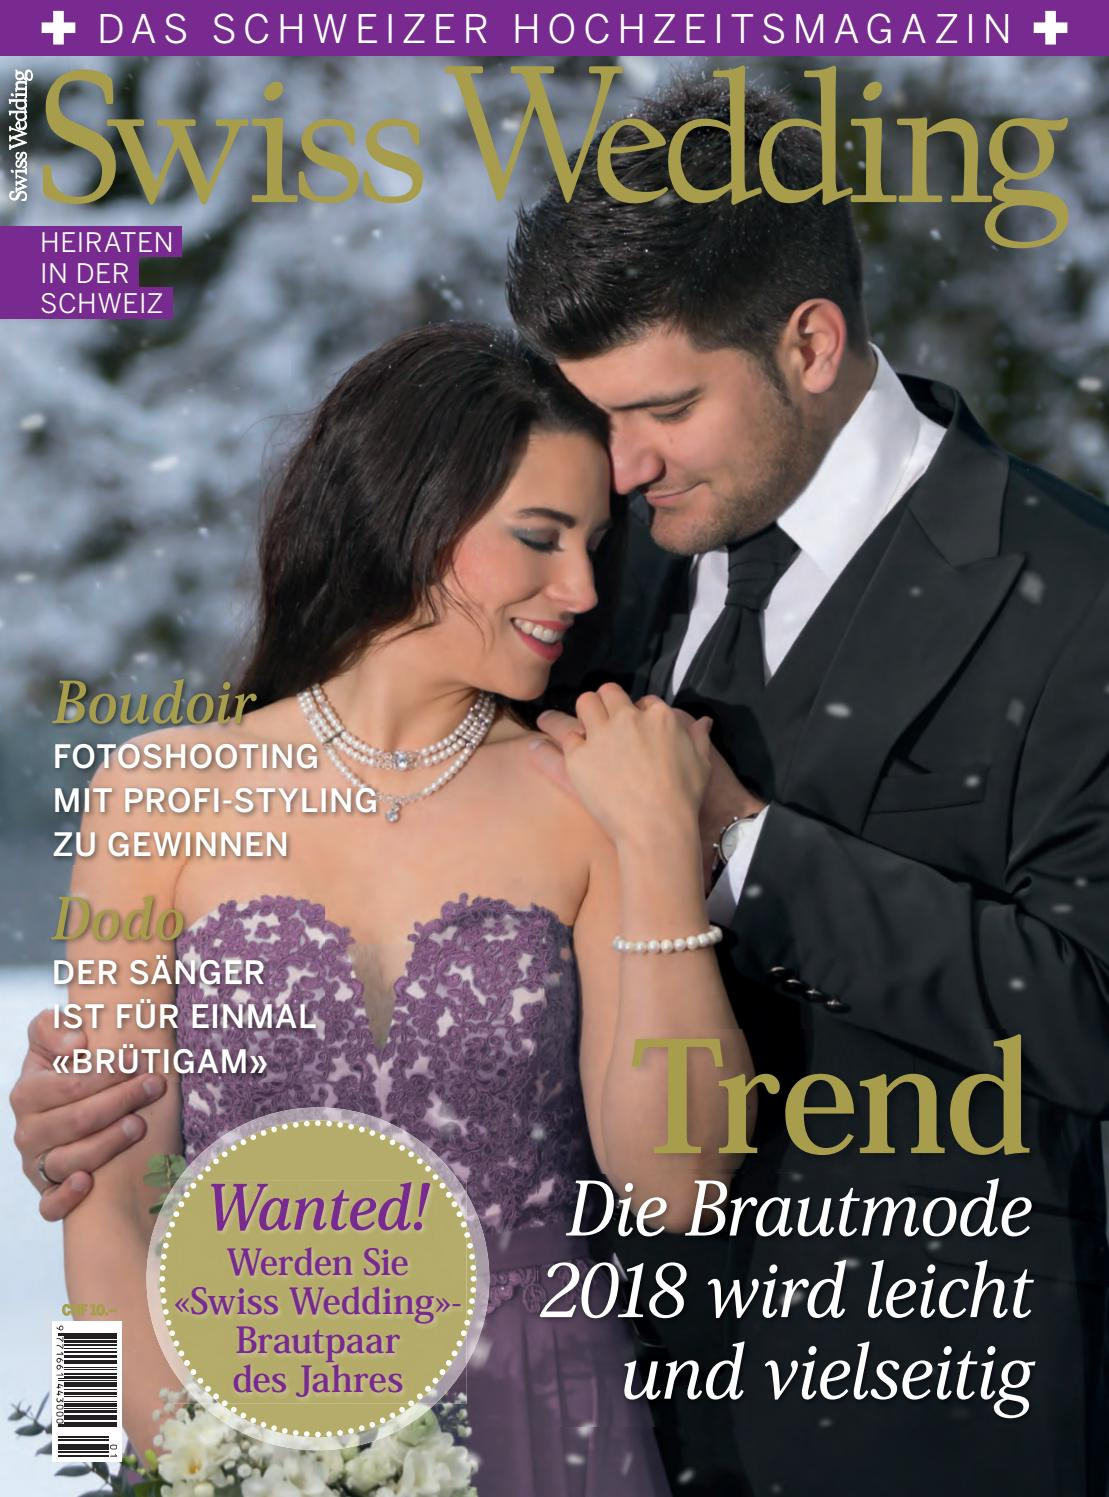 Swiss Wedding 01 2018 by BL Verlag AG - issuu